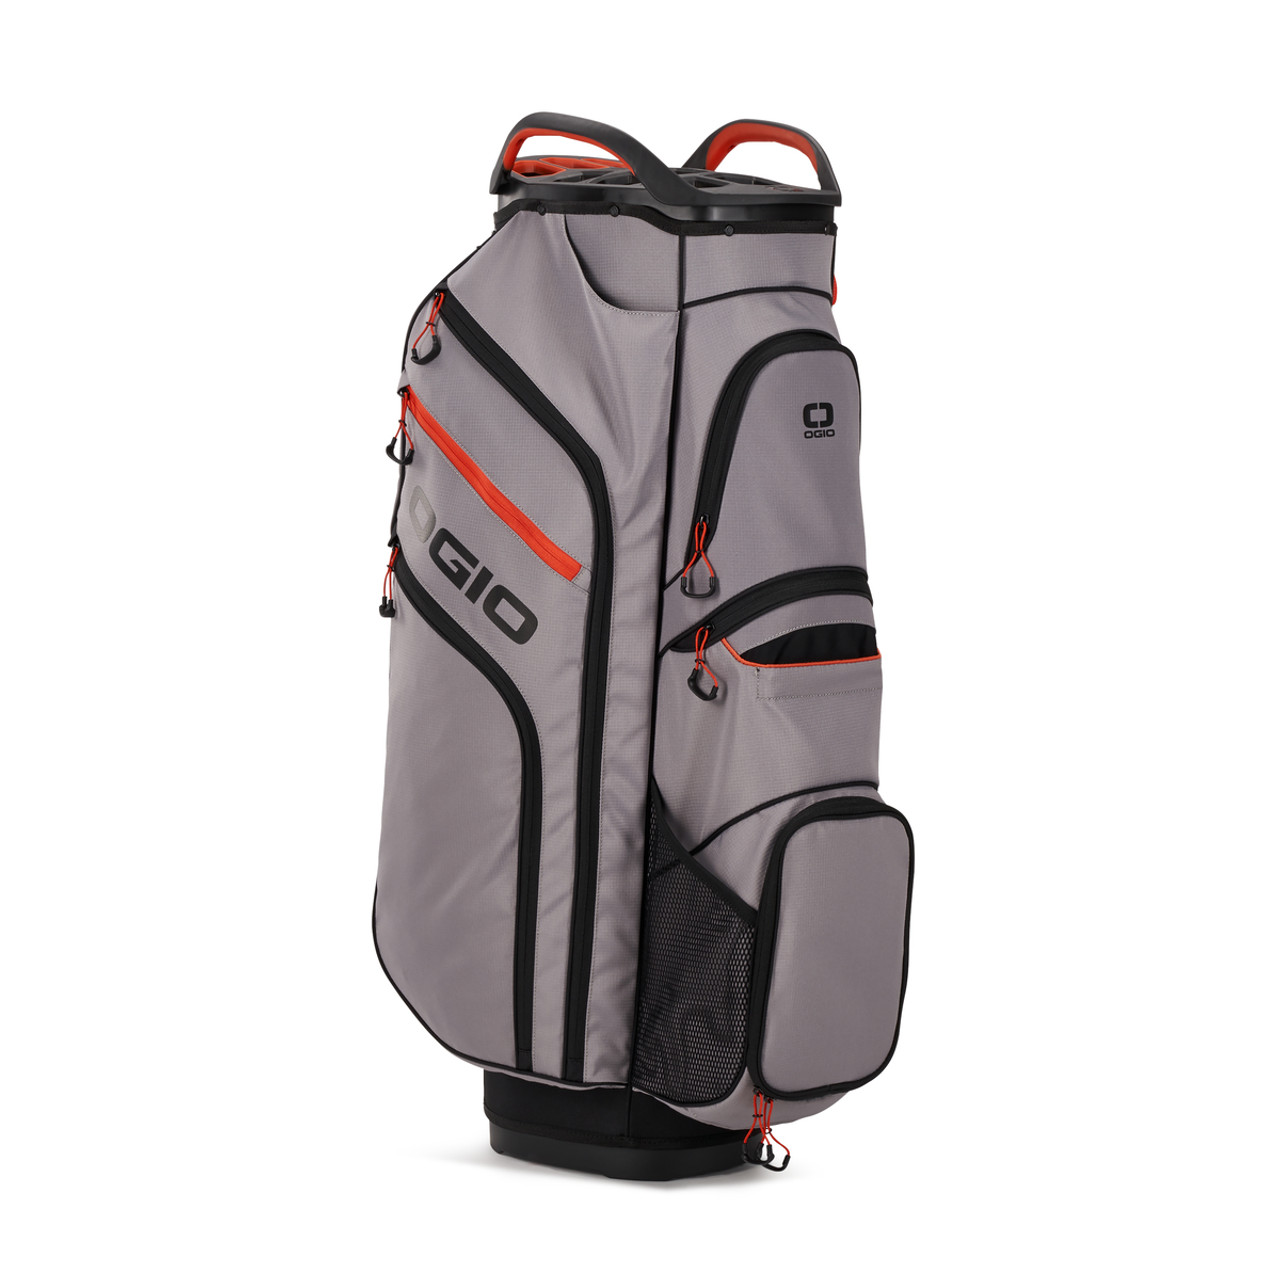 Ogio Woode Cart Bag - Grey